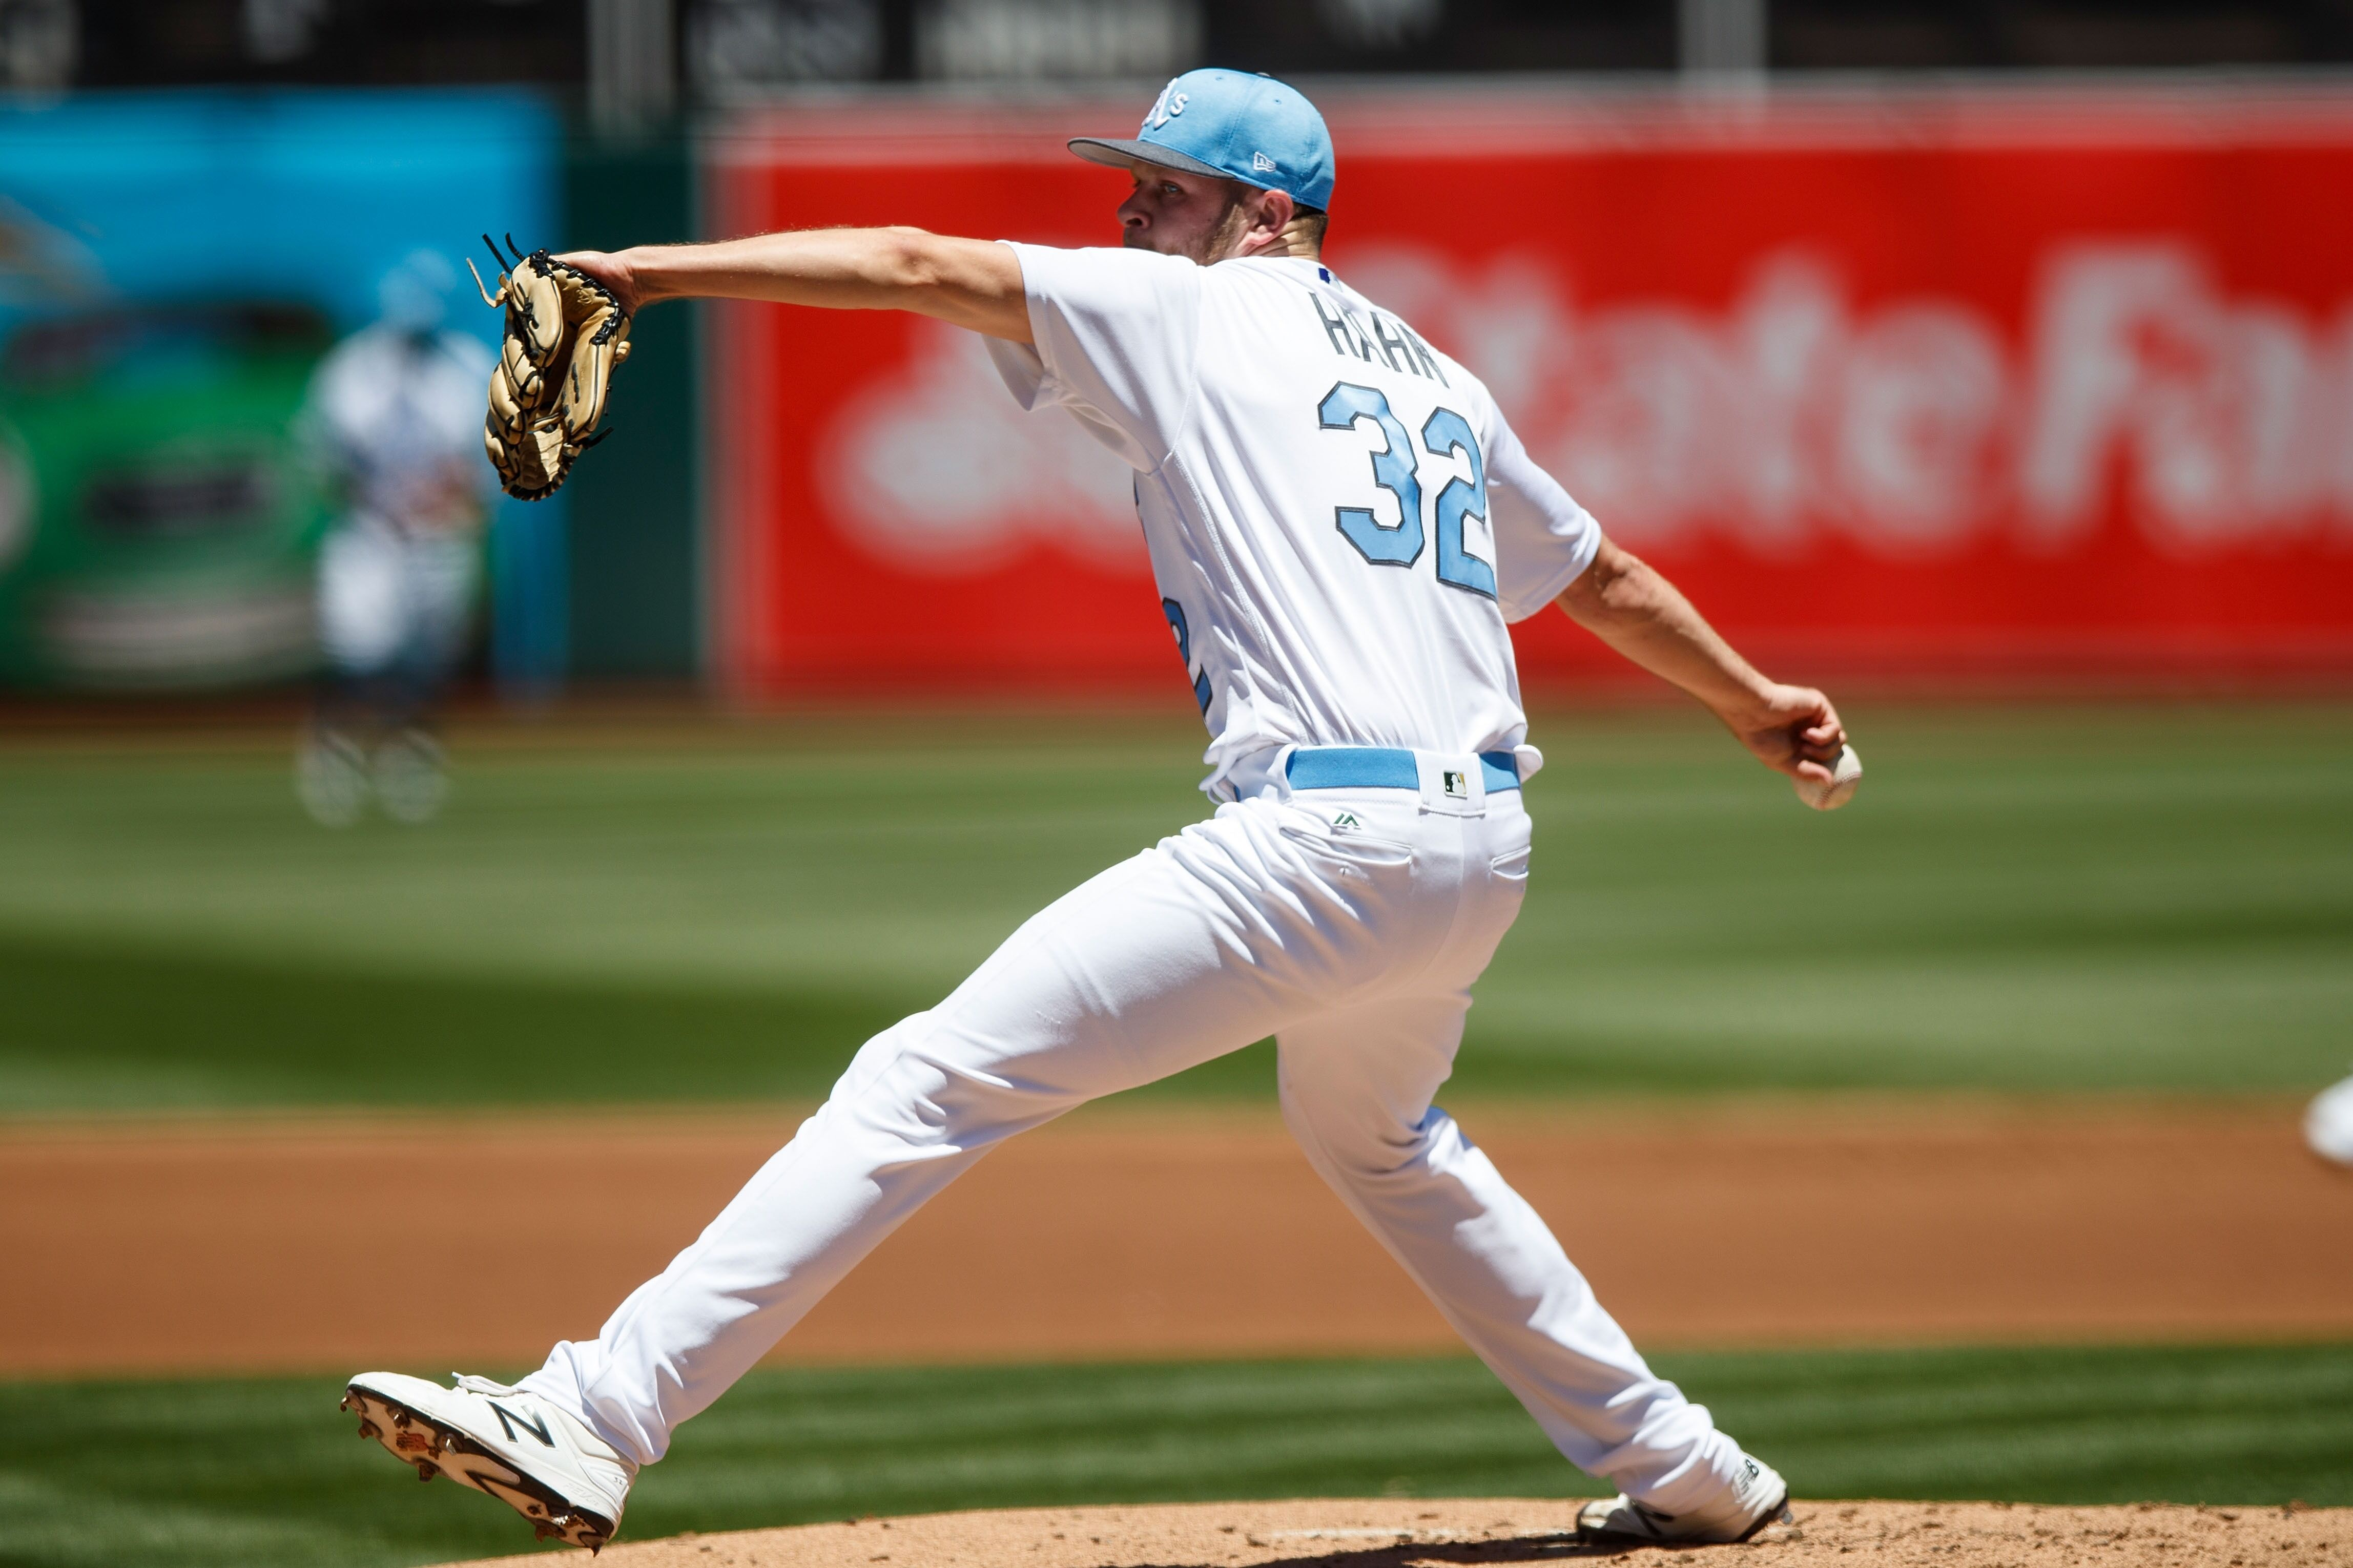 KC Royals: Jesse Hahn is facing immense pressure to perform